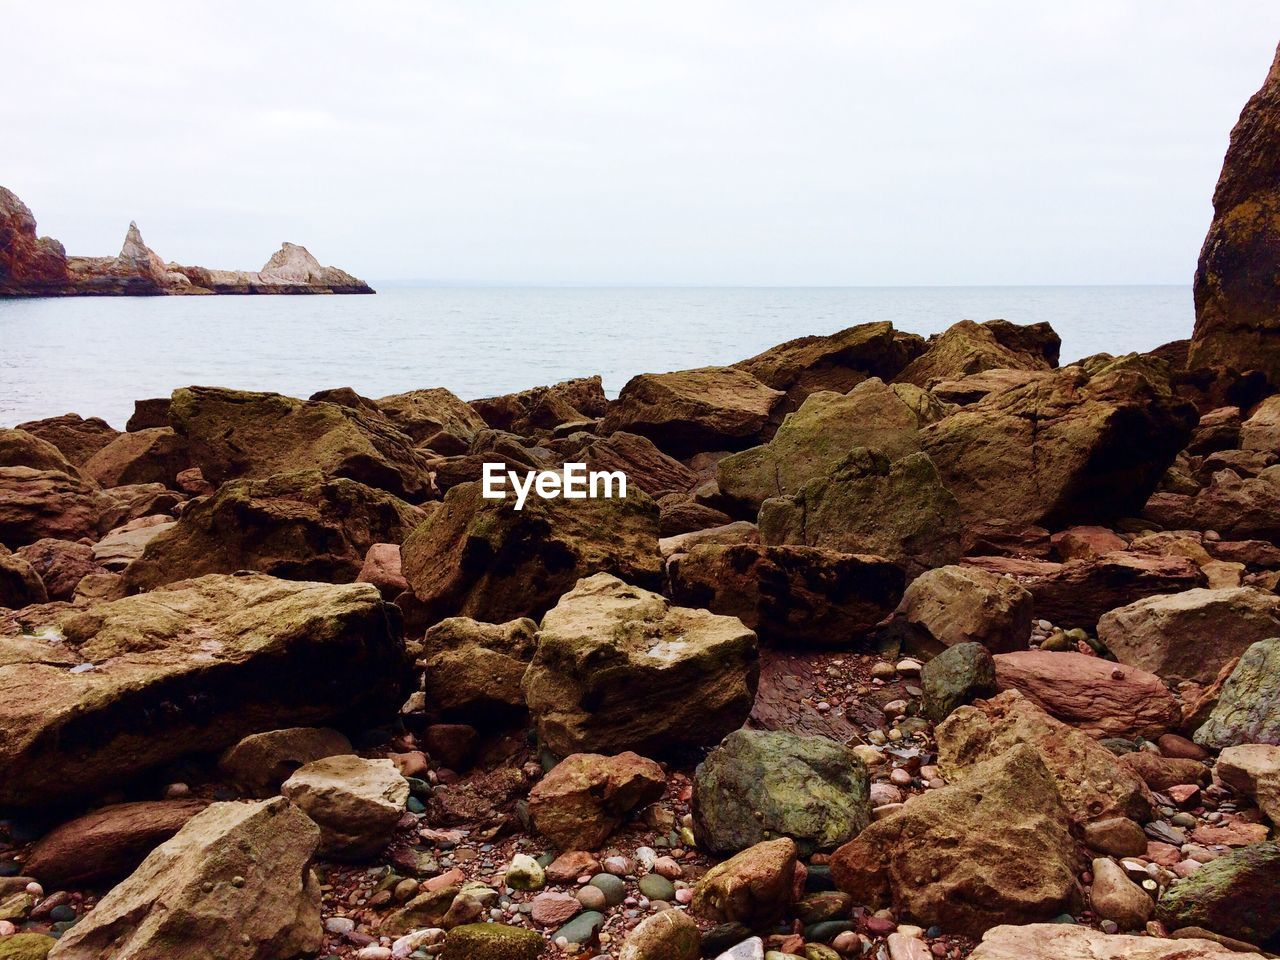 sea, rock - object, rock formation, water, scenics, nature, tranquility, horizon over water, beauty in nature, cliff, tranquil scene, no people, outdoors, sky, day, beach